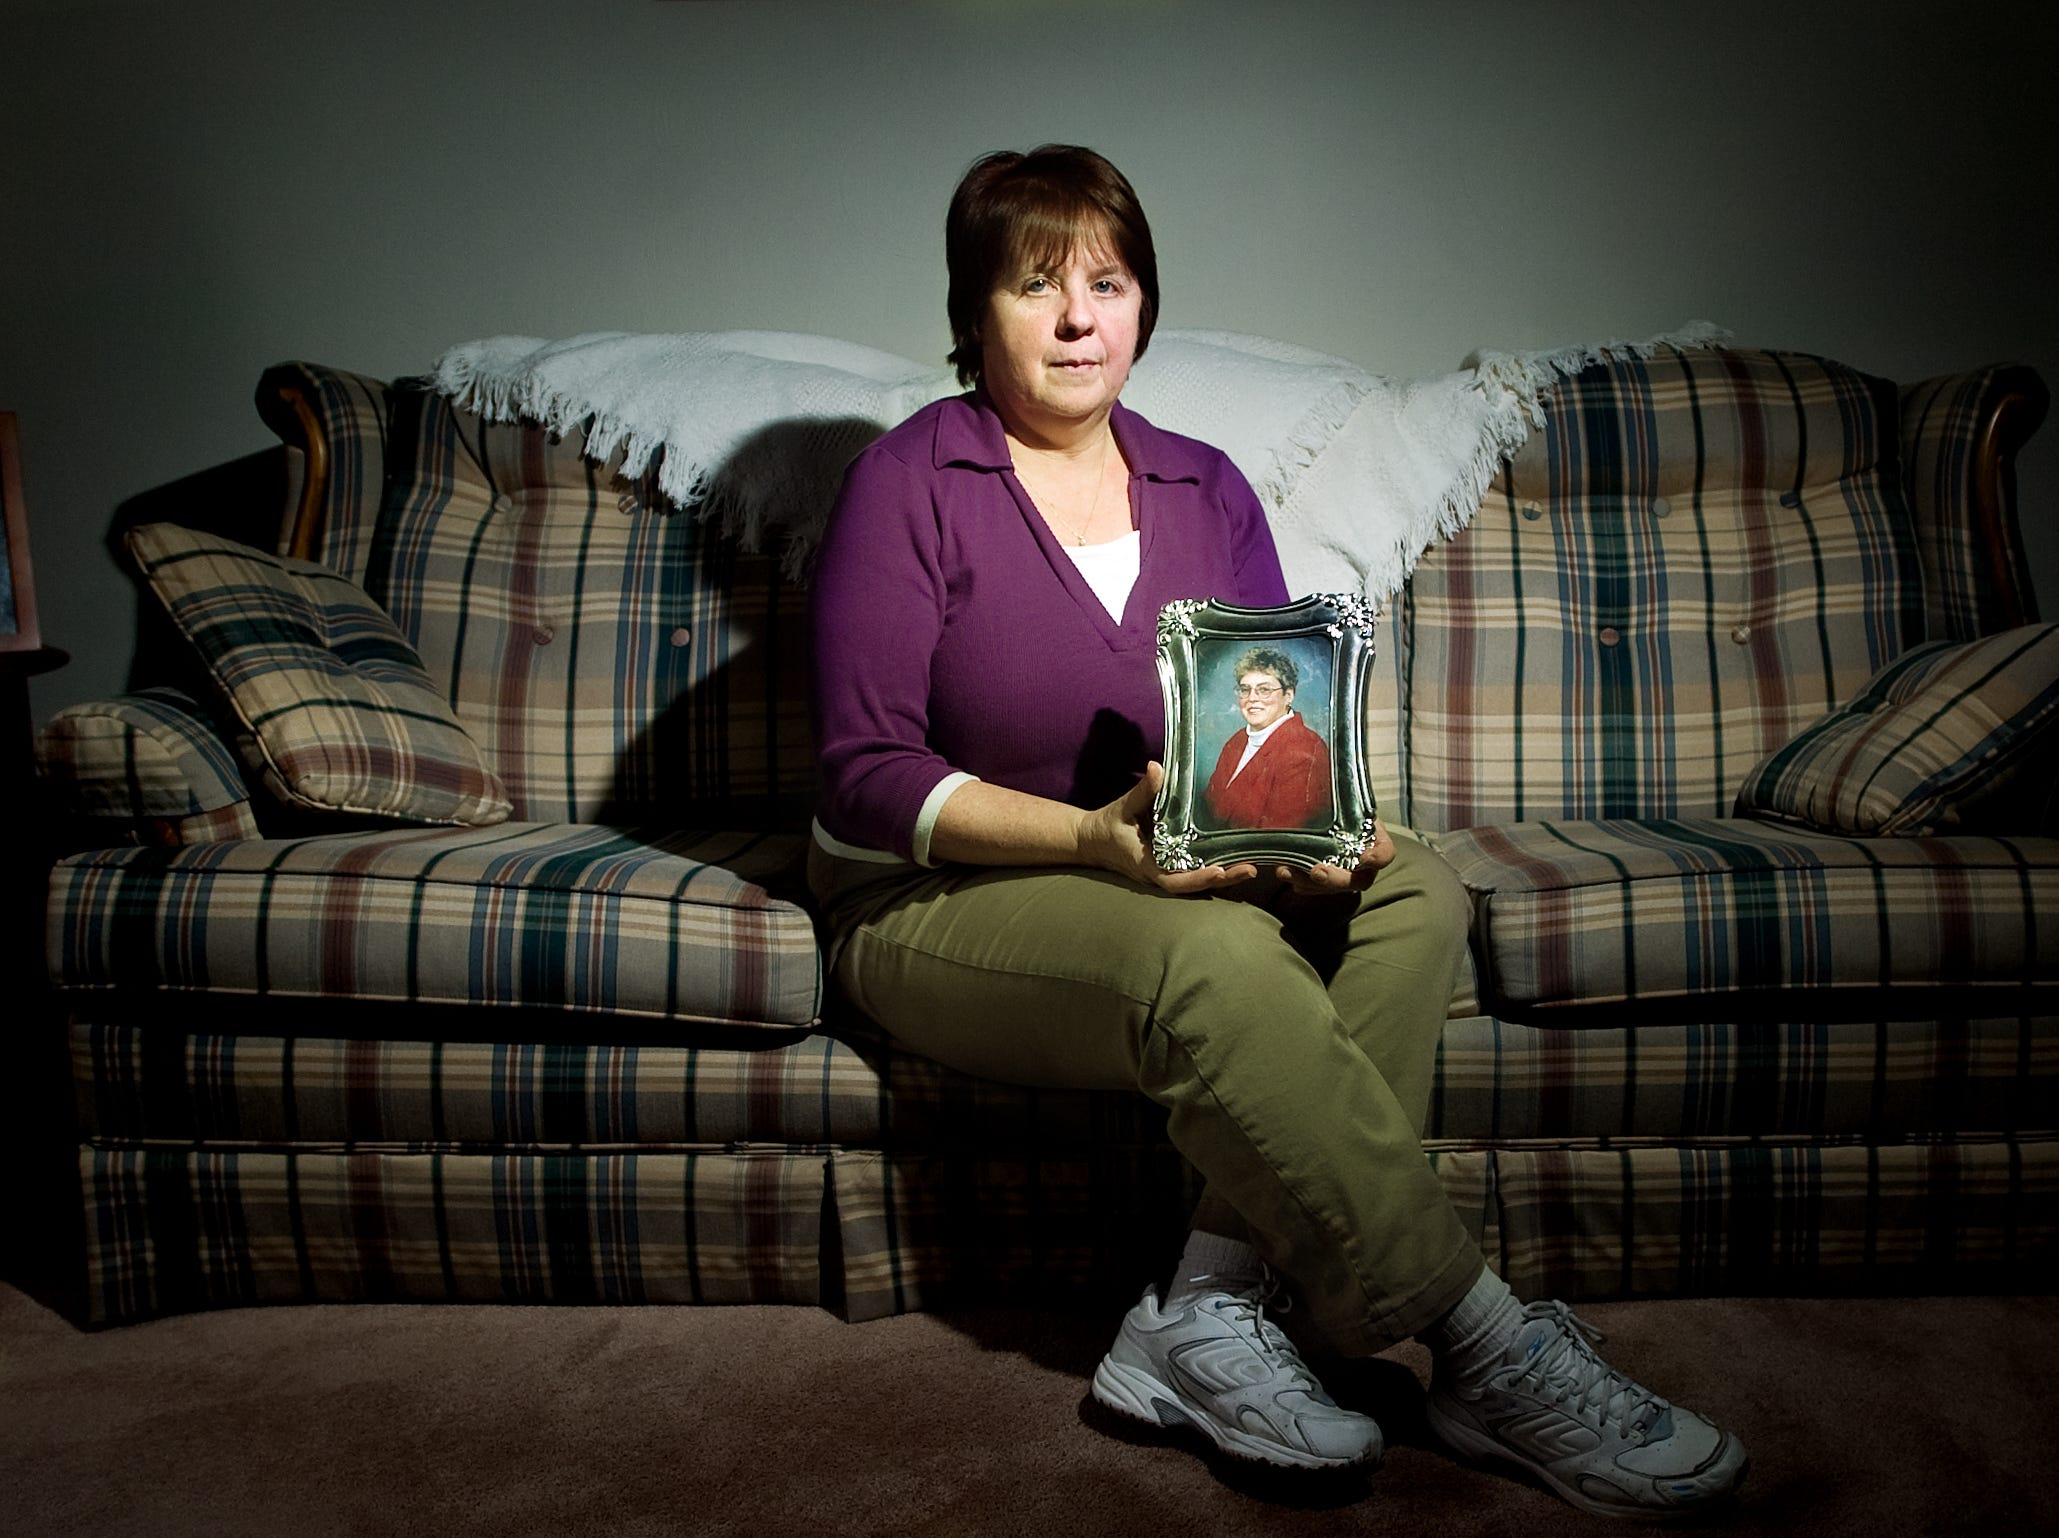 Bonnie Leister, the sister of Diane Wolf, who disappeared 19 years ago.